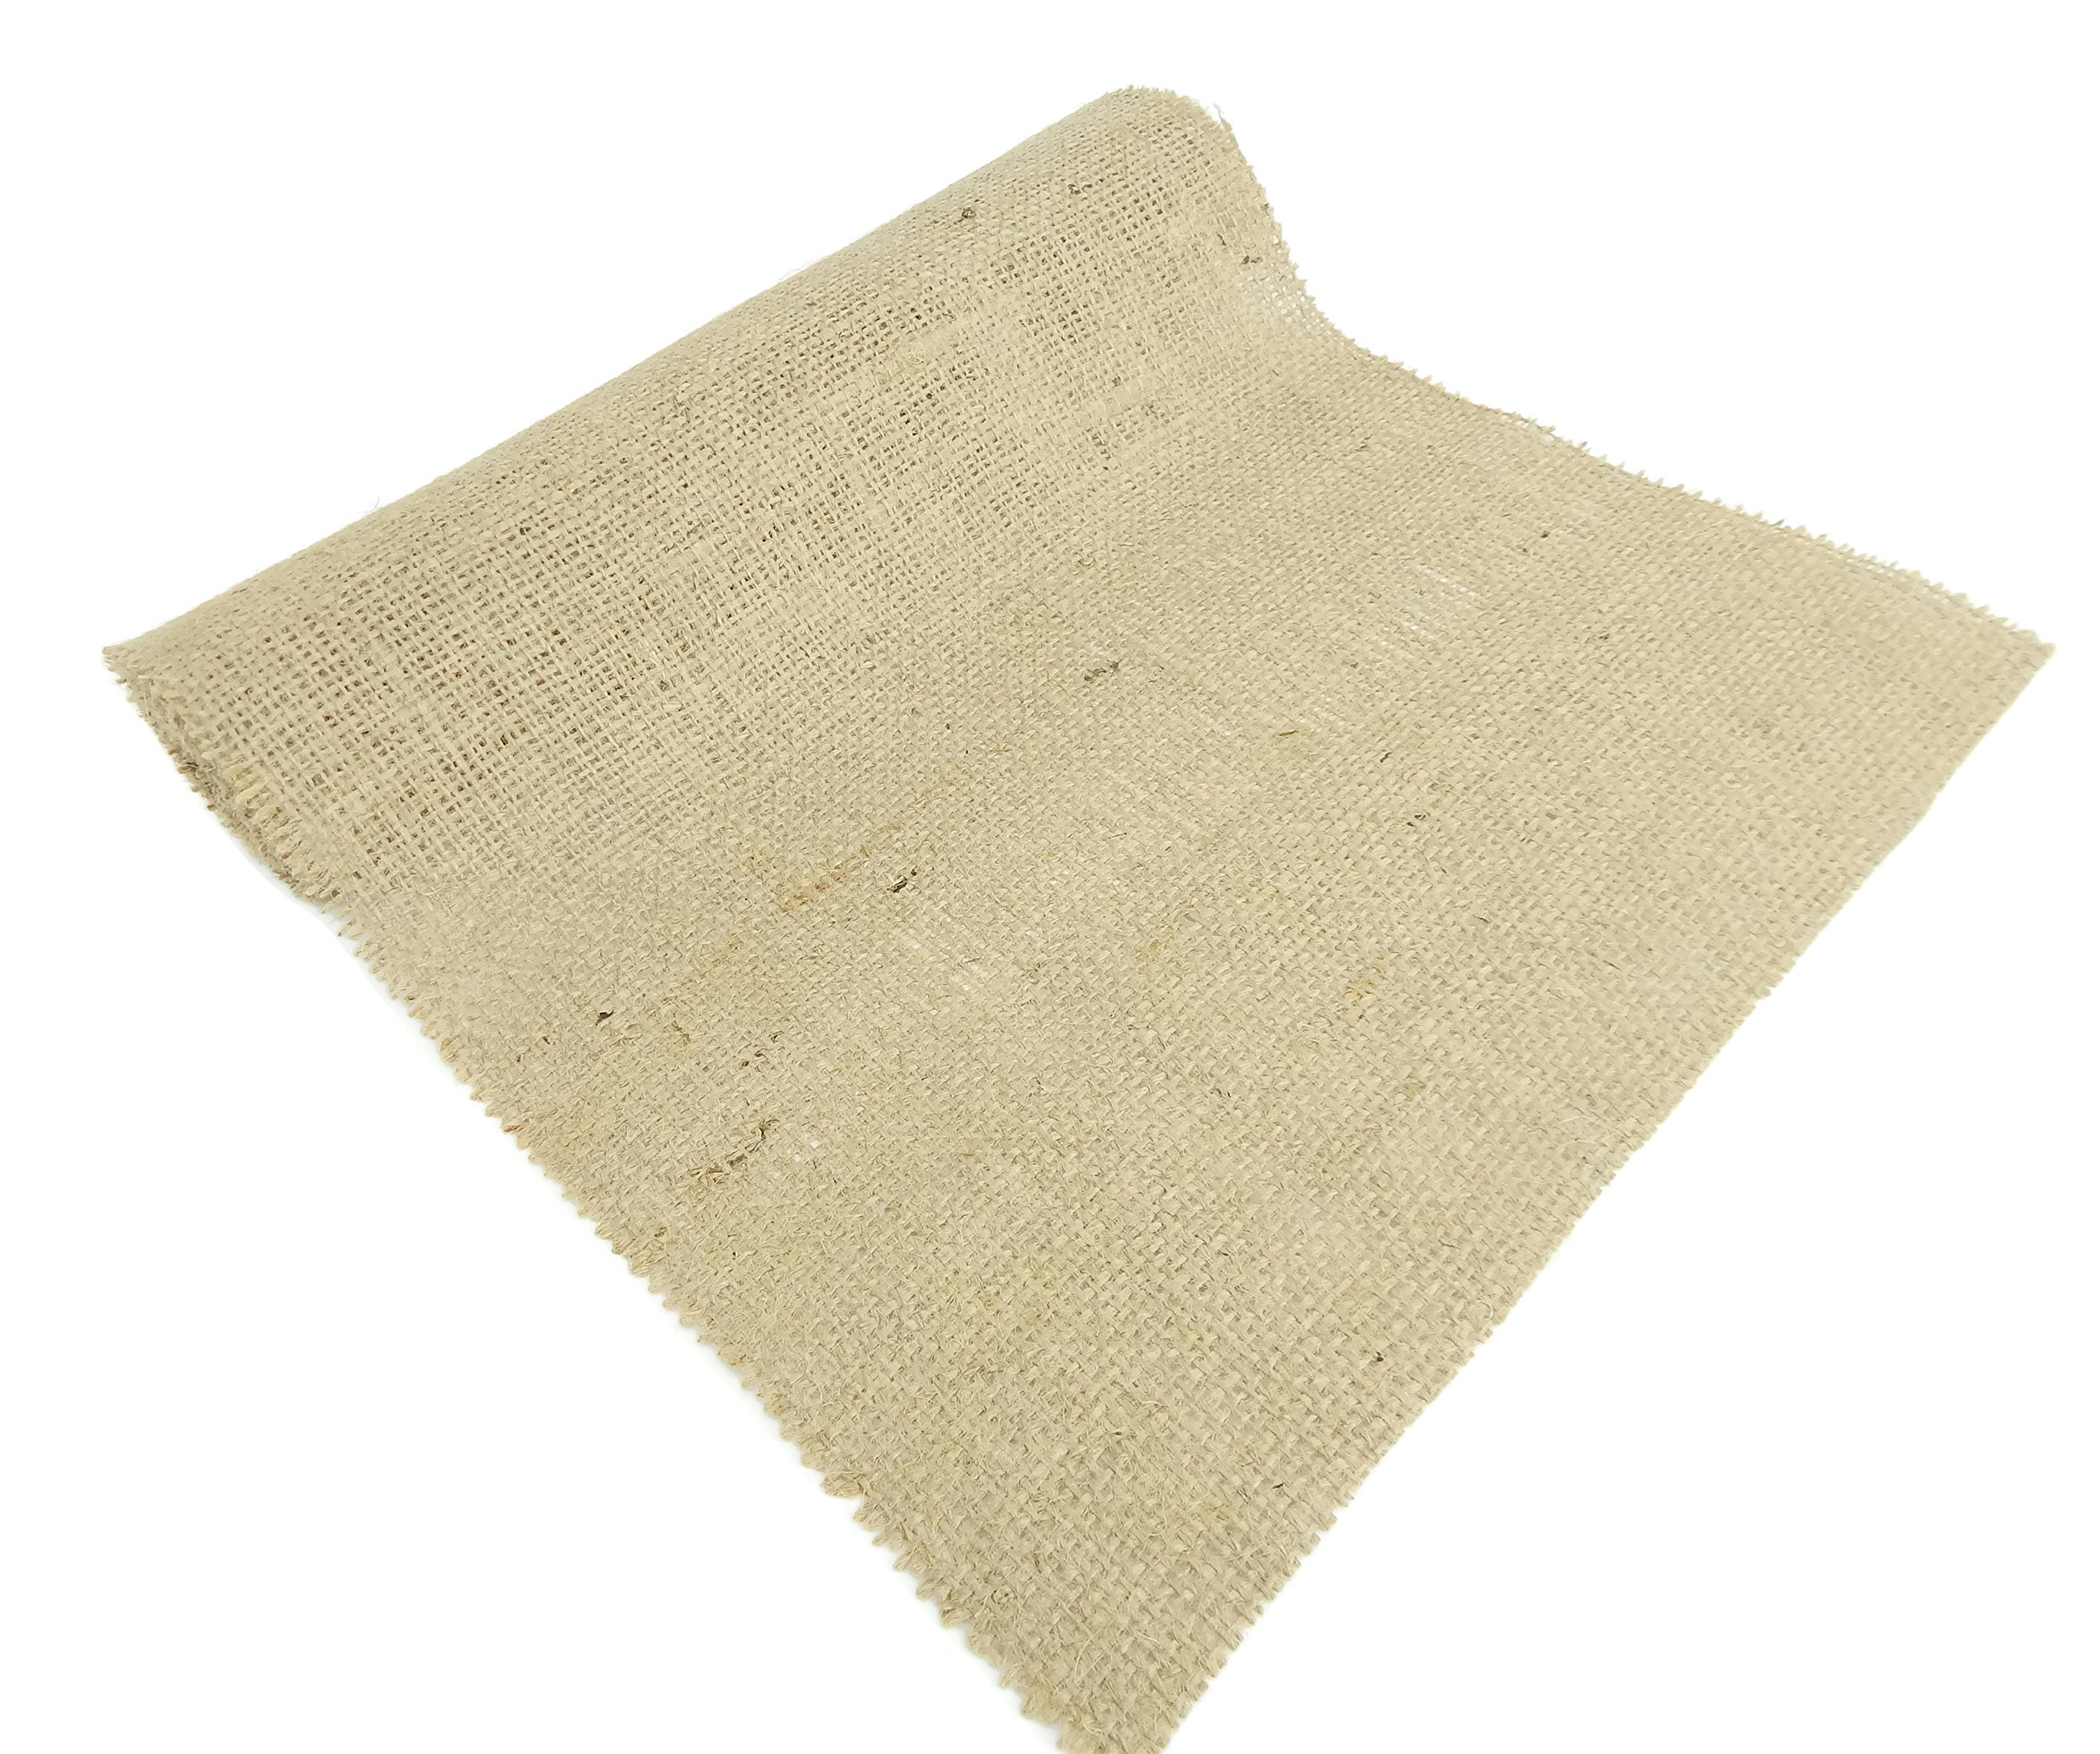 Burlap and Beyond 14'' Natural Burlap Roll - 50 Yards Eco-Friendly Jute Burlap Fabric Unfinished Edges 14 Inch by Burlap and Beyond (Image #3)